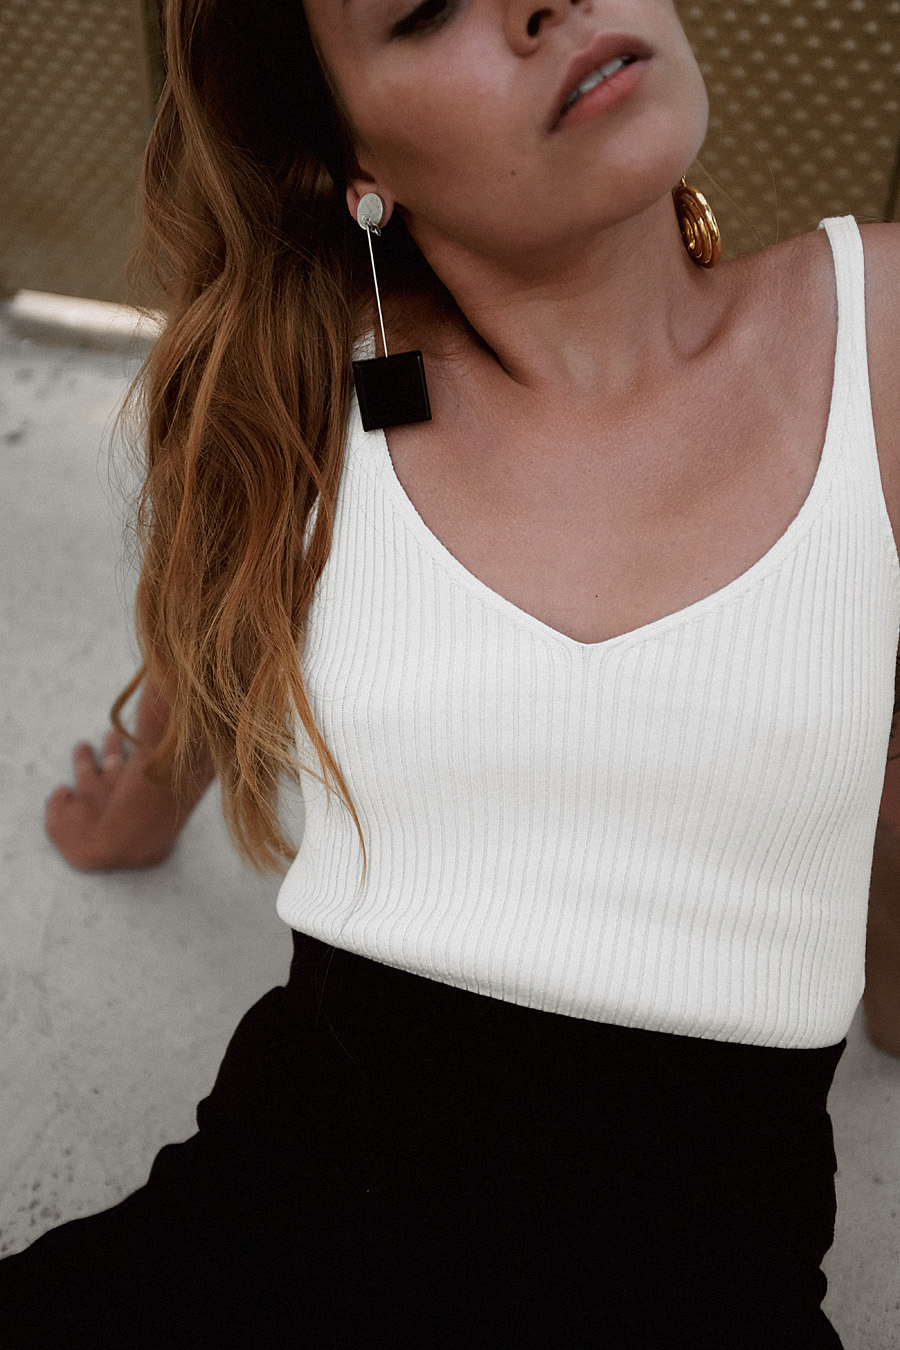 Jacquemus Le Carre earrinngs, Tibi strap sandals, round raffia bag, Tôteme headband, white ribbed top, black ribbed culottes